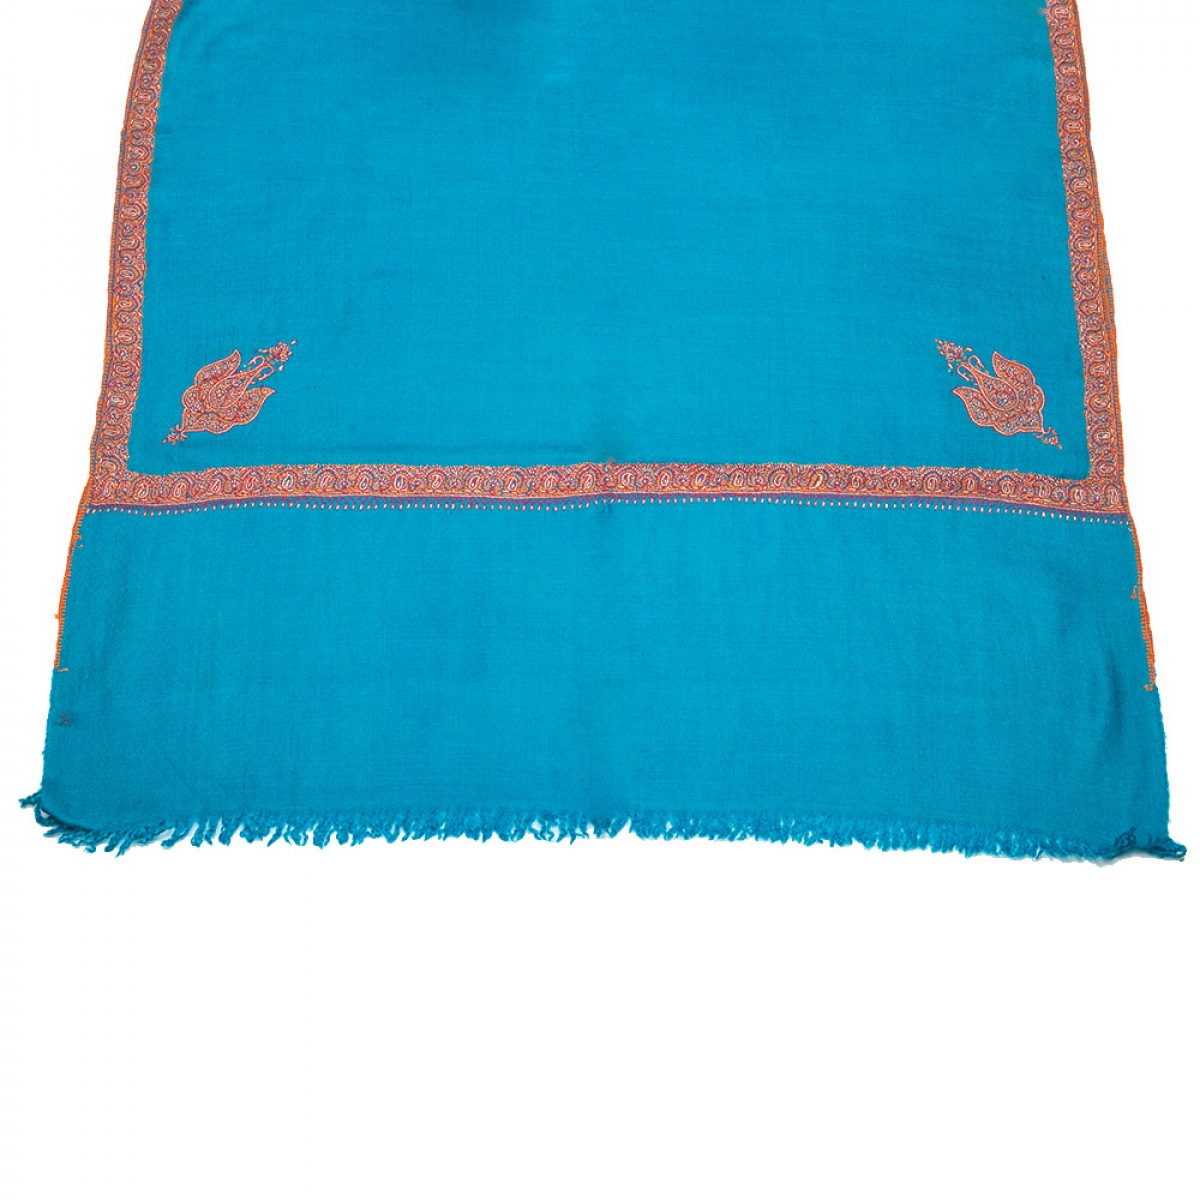 Embroidered Pashmina stole - Blue & Red